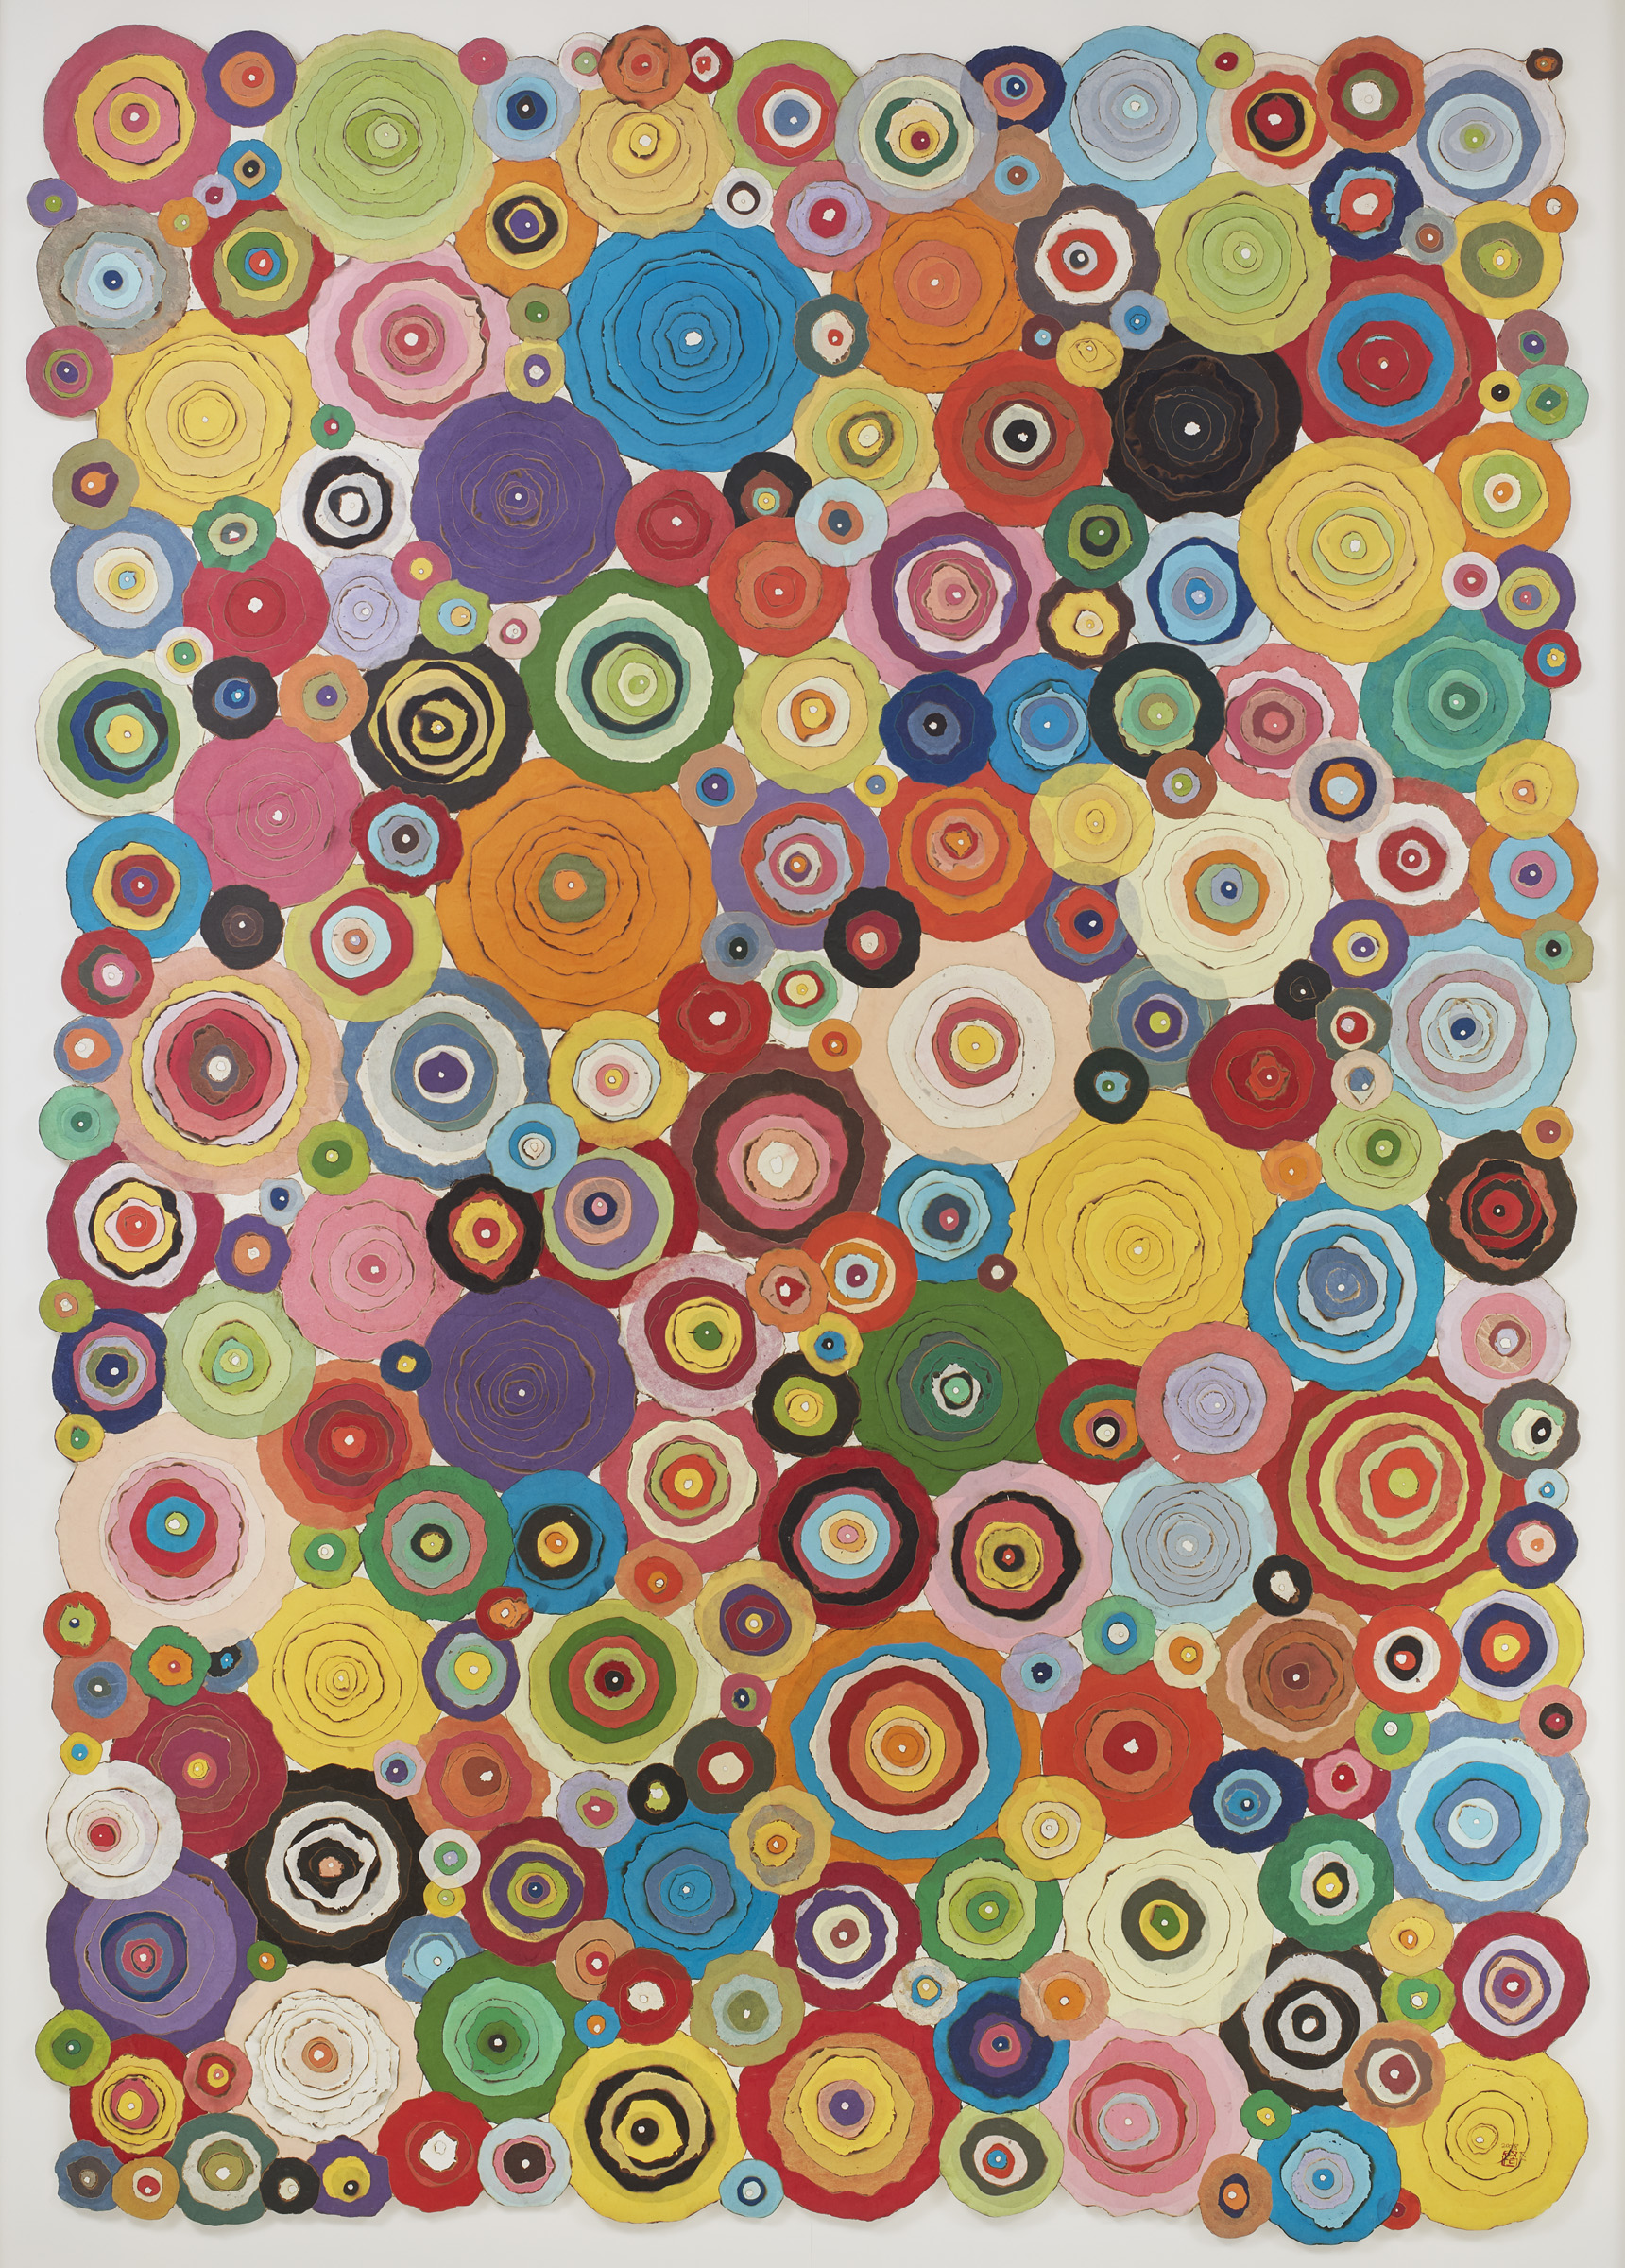 Numerous different colored circle shaped pieces of paper stacked to create a collage.